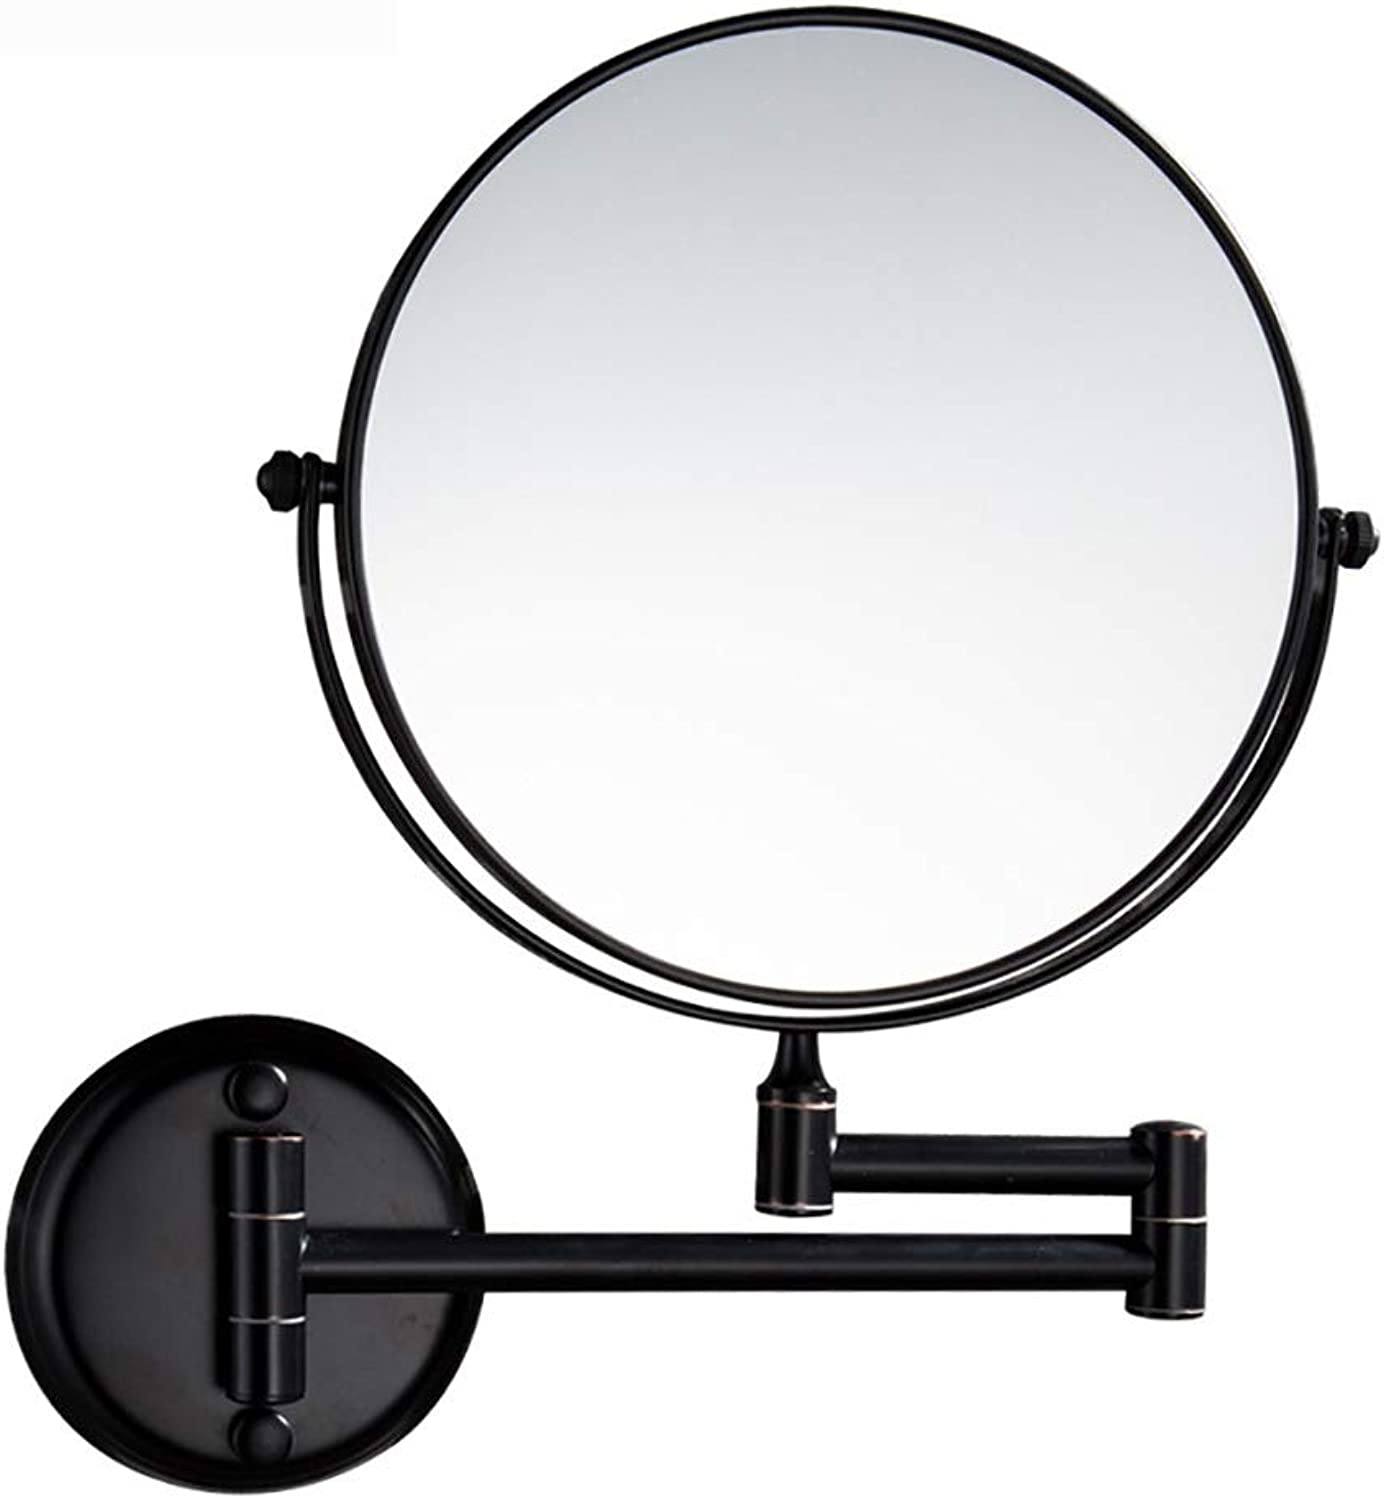 Two-Sided Swivel Wall Mount Mirror, Wall Mount Makeup Mirror, 1x 3x 5x 7x 10x Magnification, 8-Inch Round Bathroom Mirrors for Wall (color   Black, Size   10X)